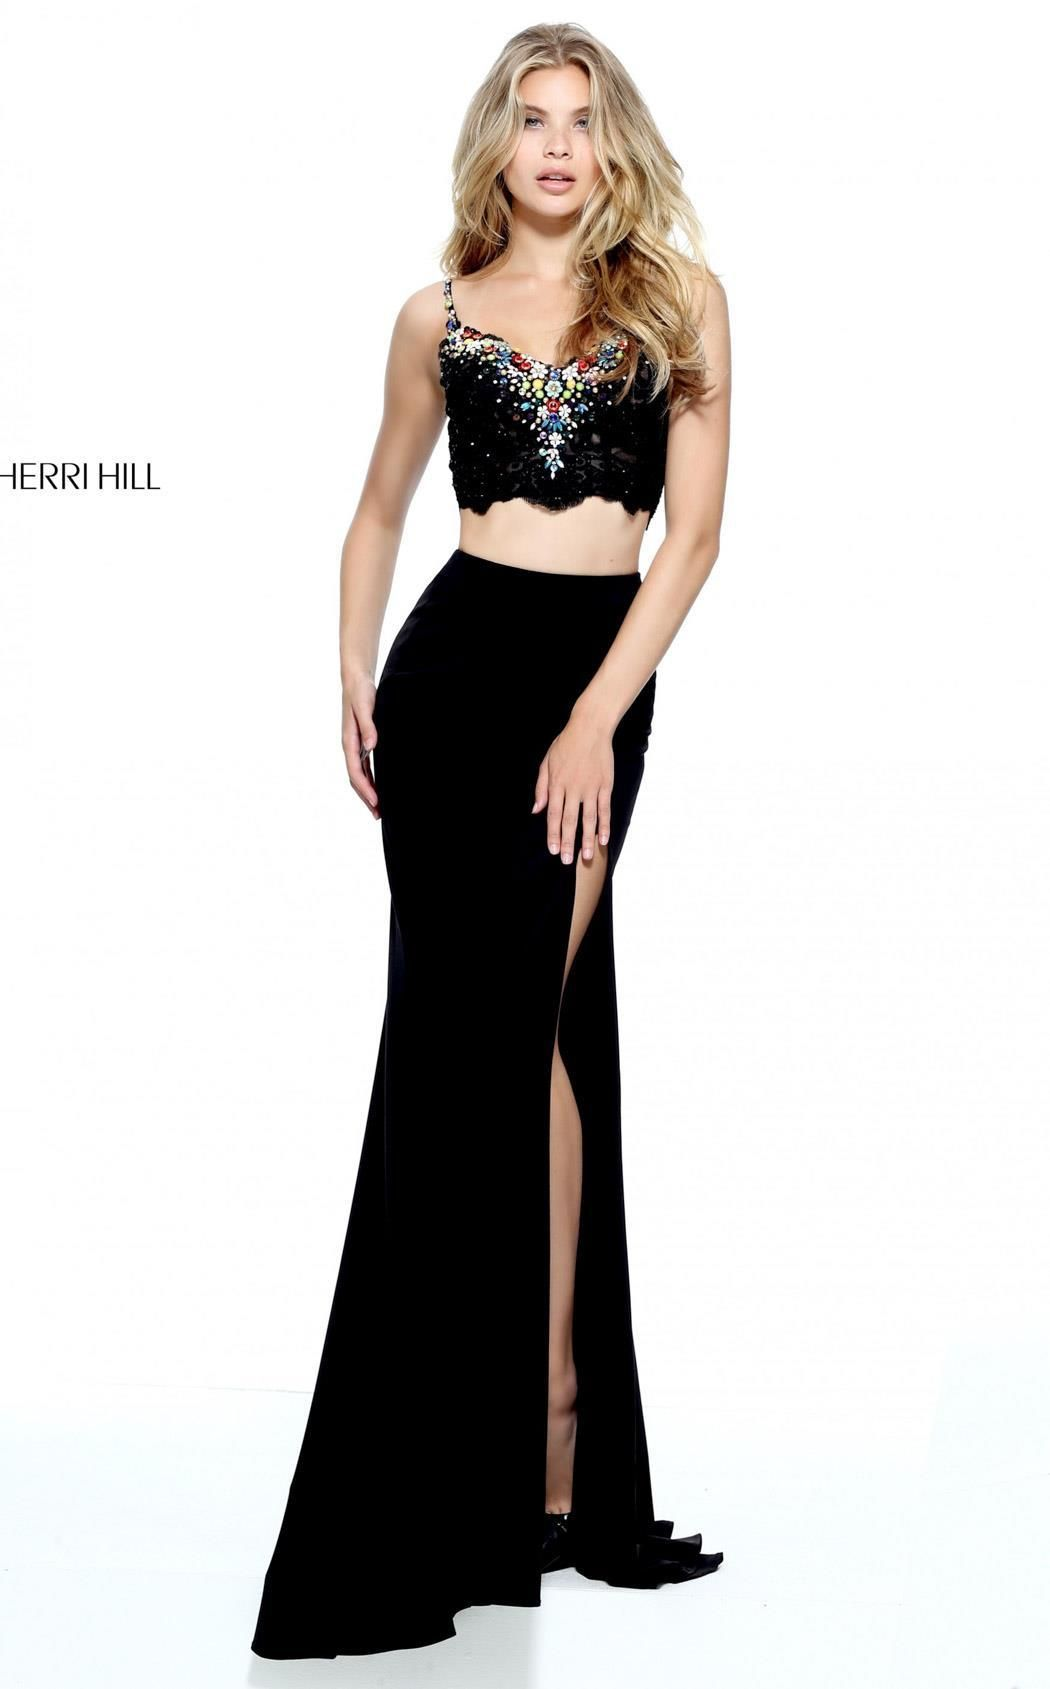 Sherri hill curvy fit side split and scalloped edge